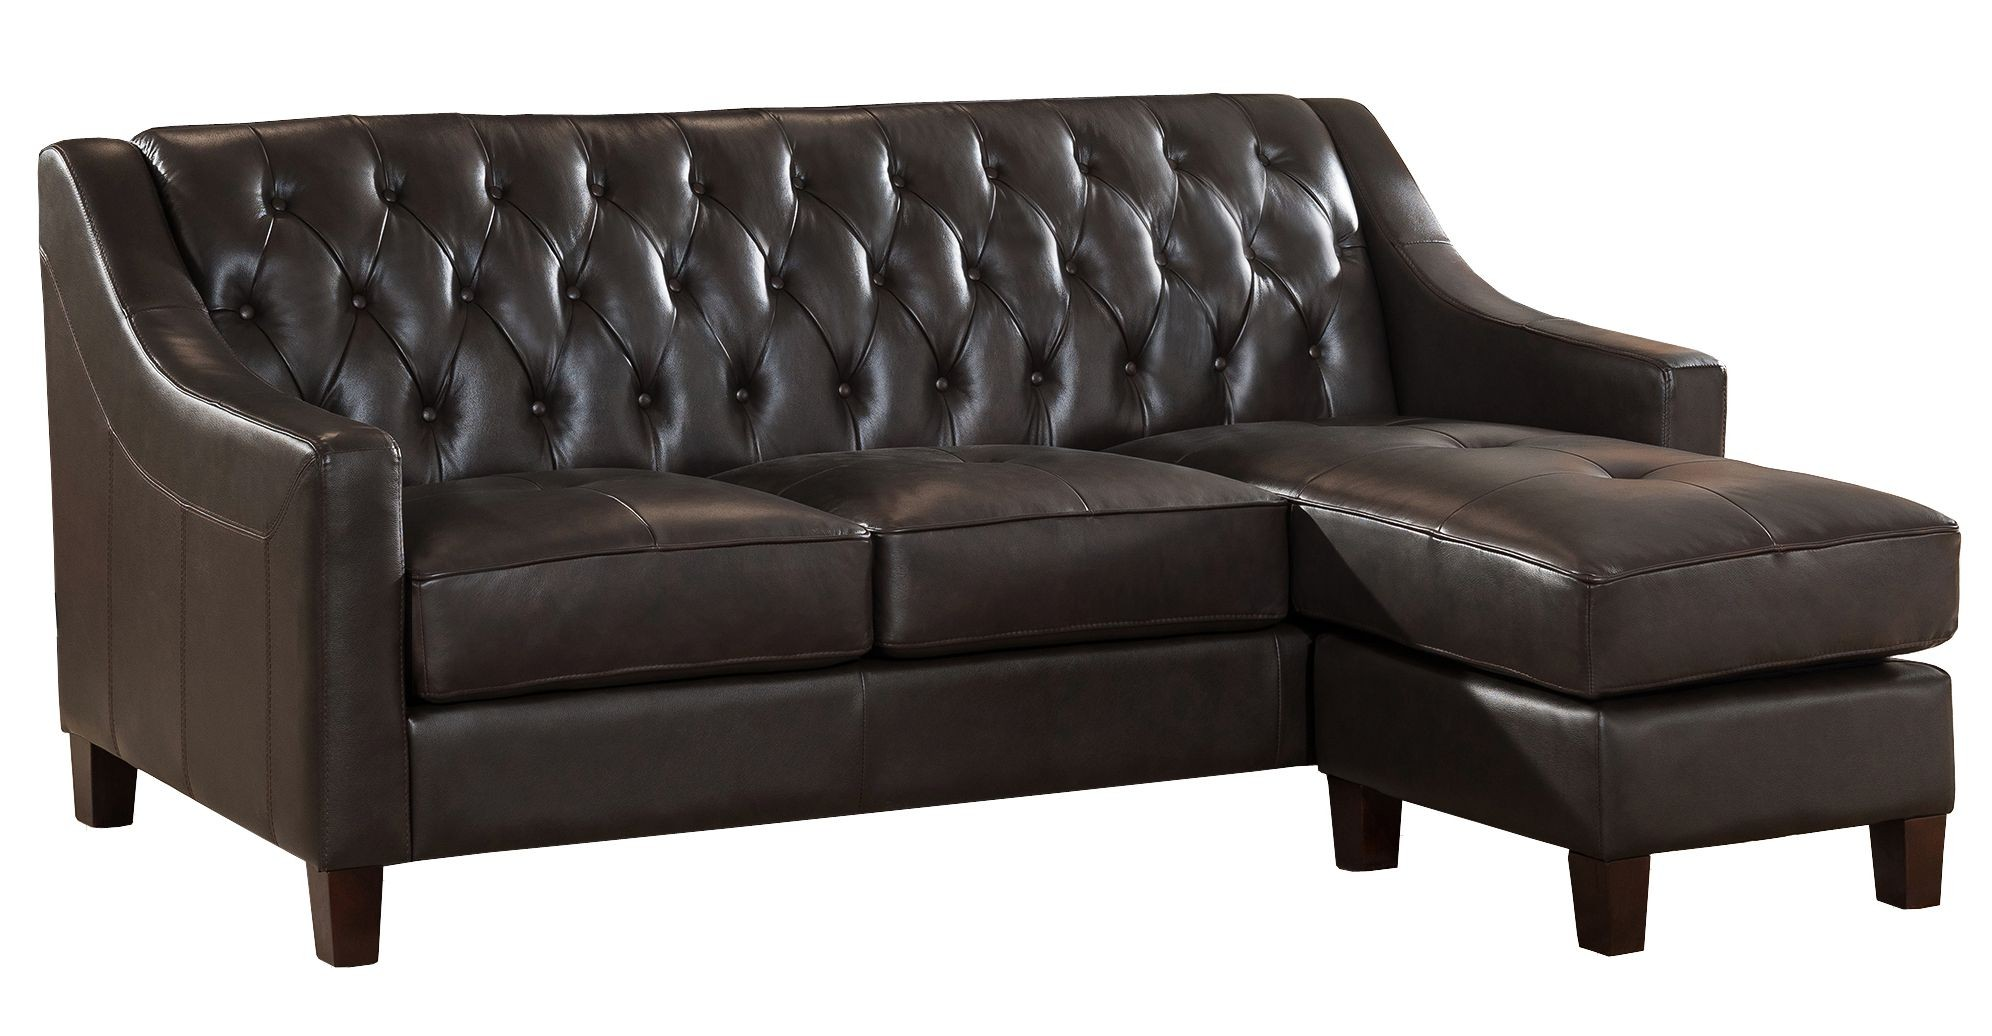 Kaitlyn brown leather reversible sofa chaise from amax for Brown chaise sofa